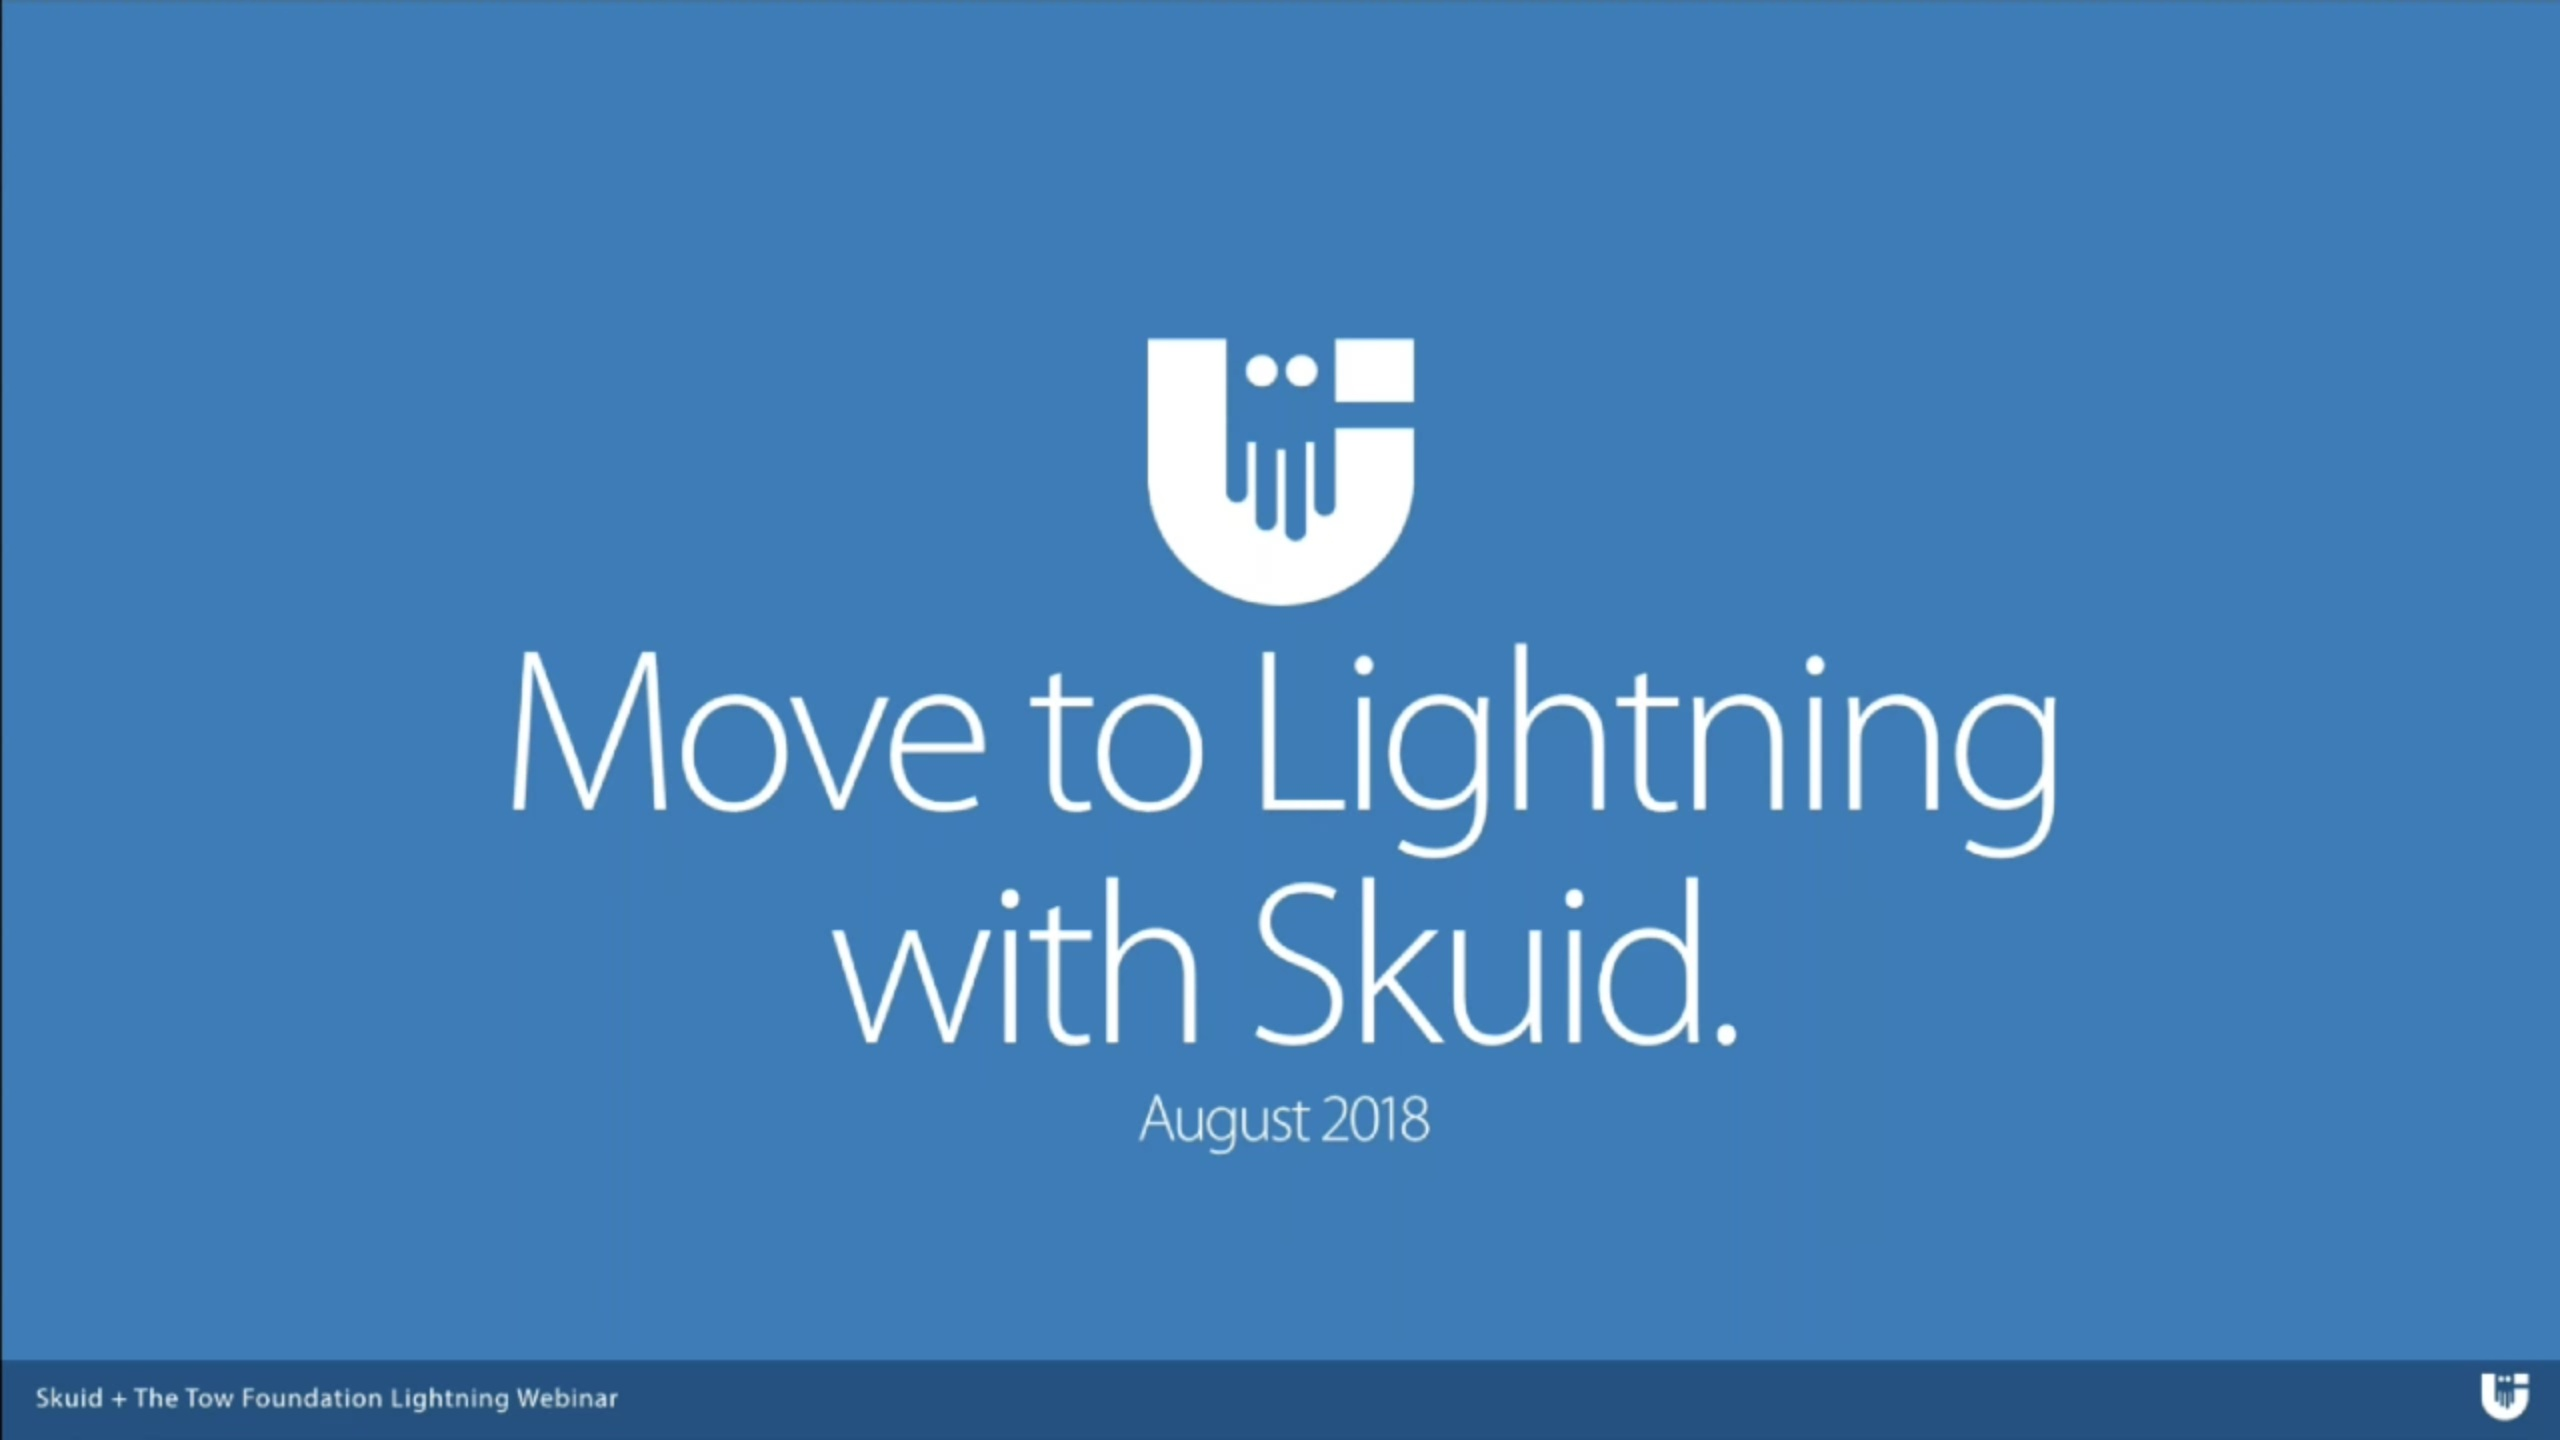 Move to Lightning with Skuid